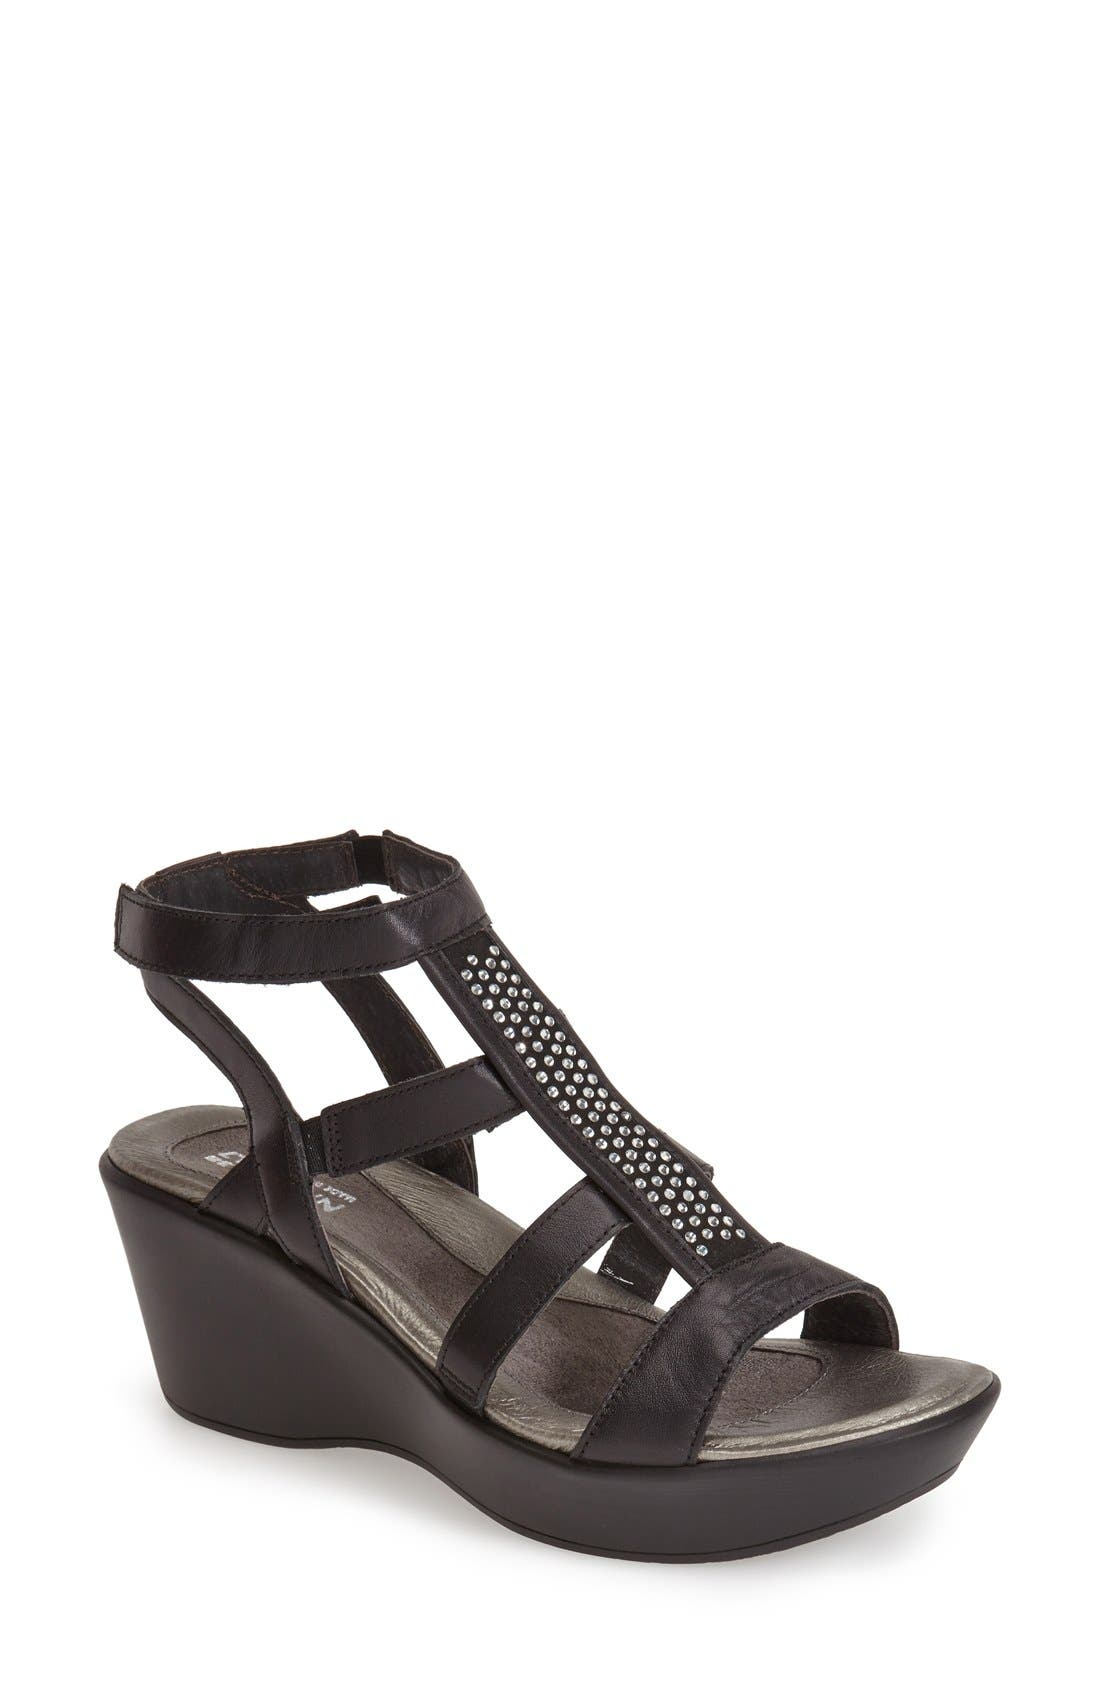 'Mystery' Platform Wedge Sandal,                             Main thumbnail 2, color,